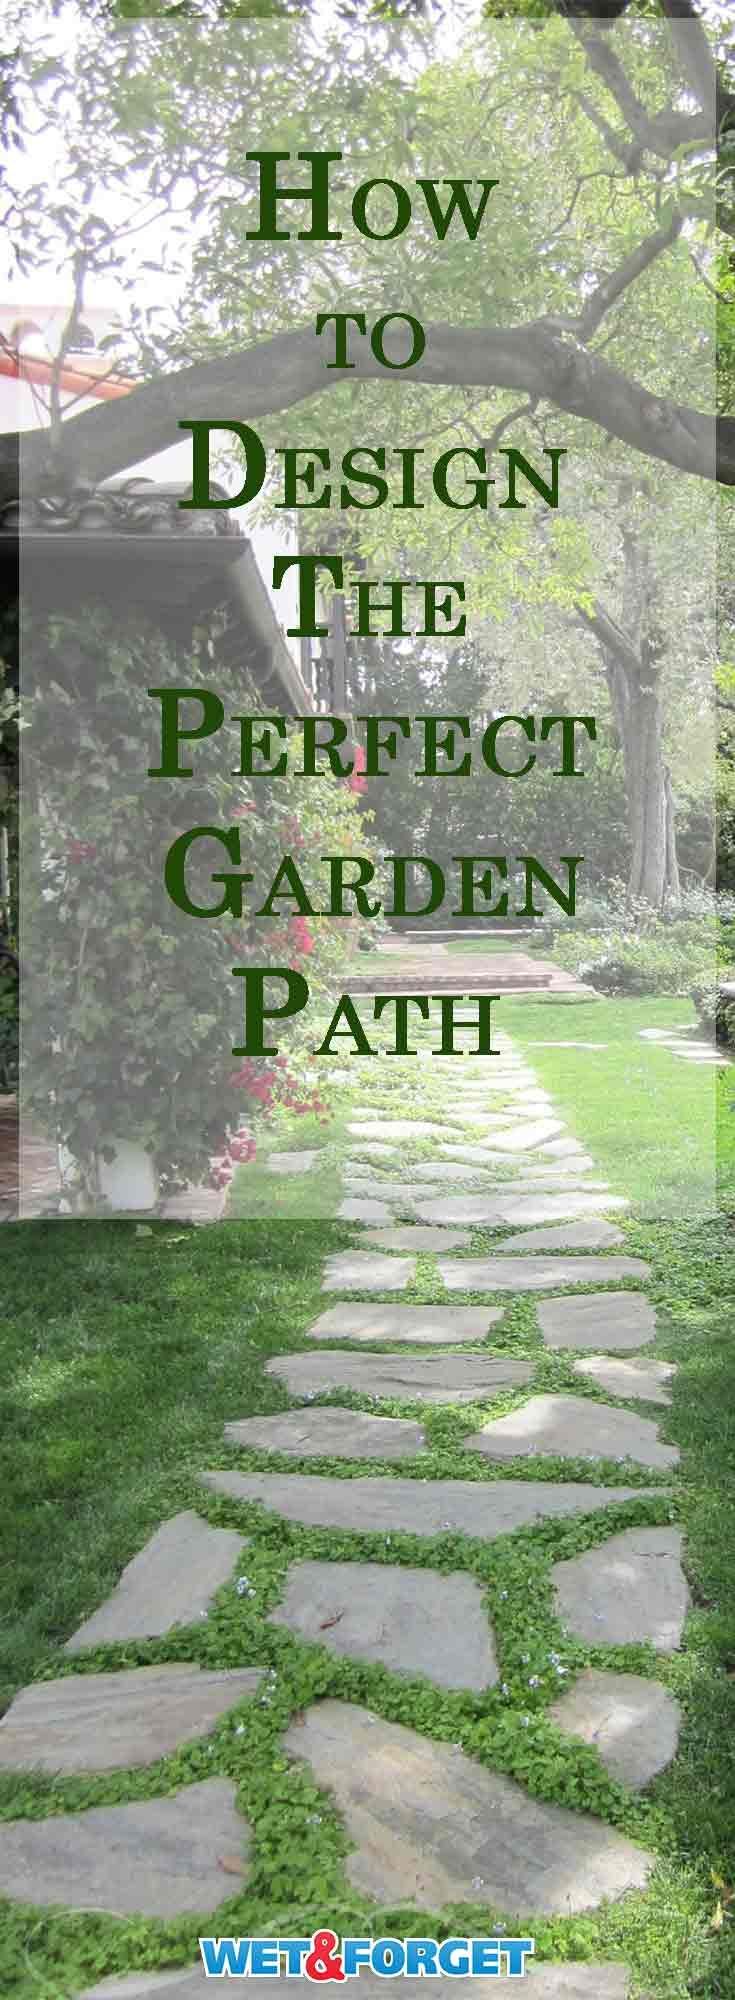 Most beautiful vegetable gardens - The Most Beautiful Gardens Include Garden Paths That Please The Eye Invite A Stroll Around